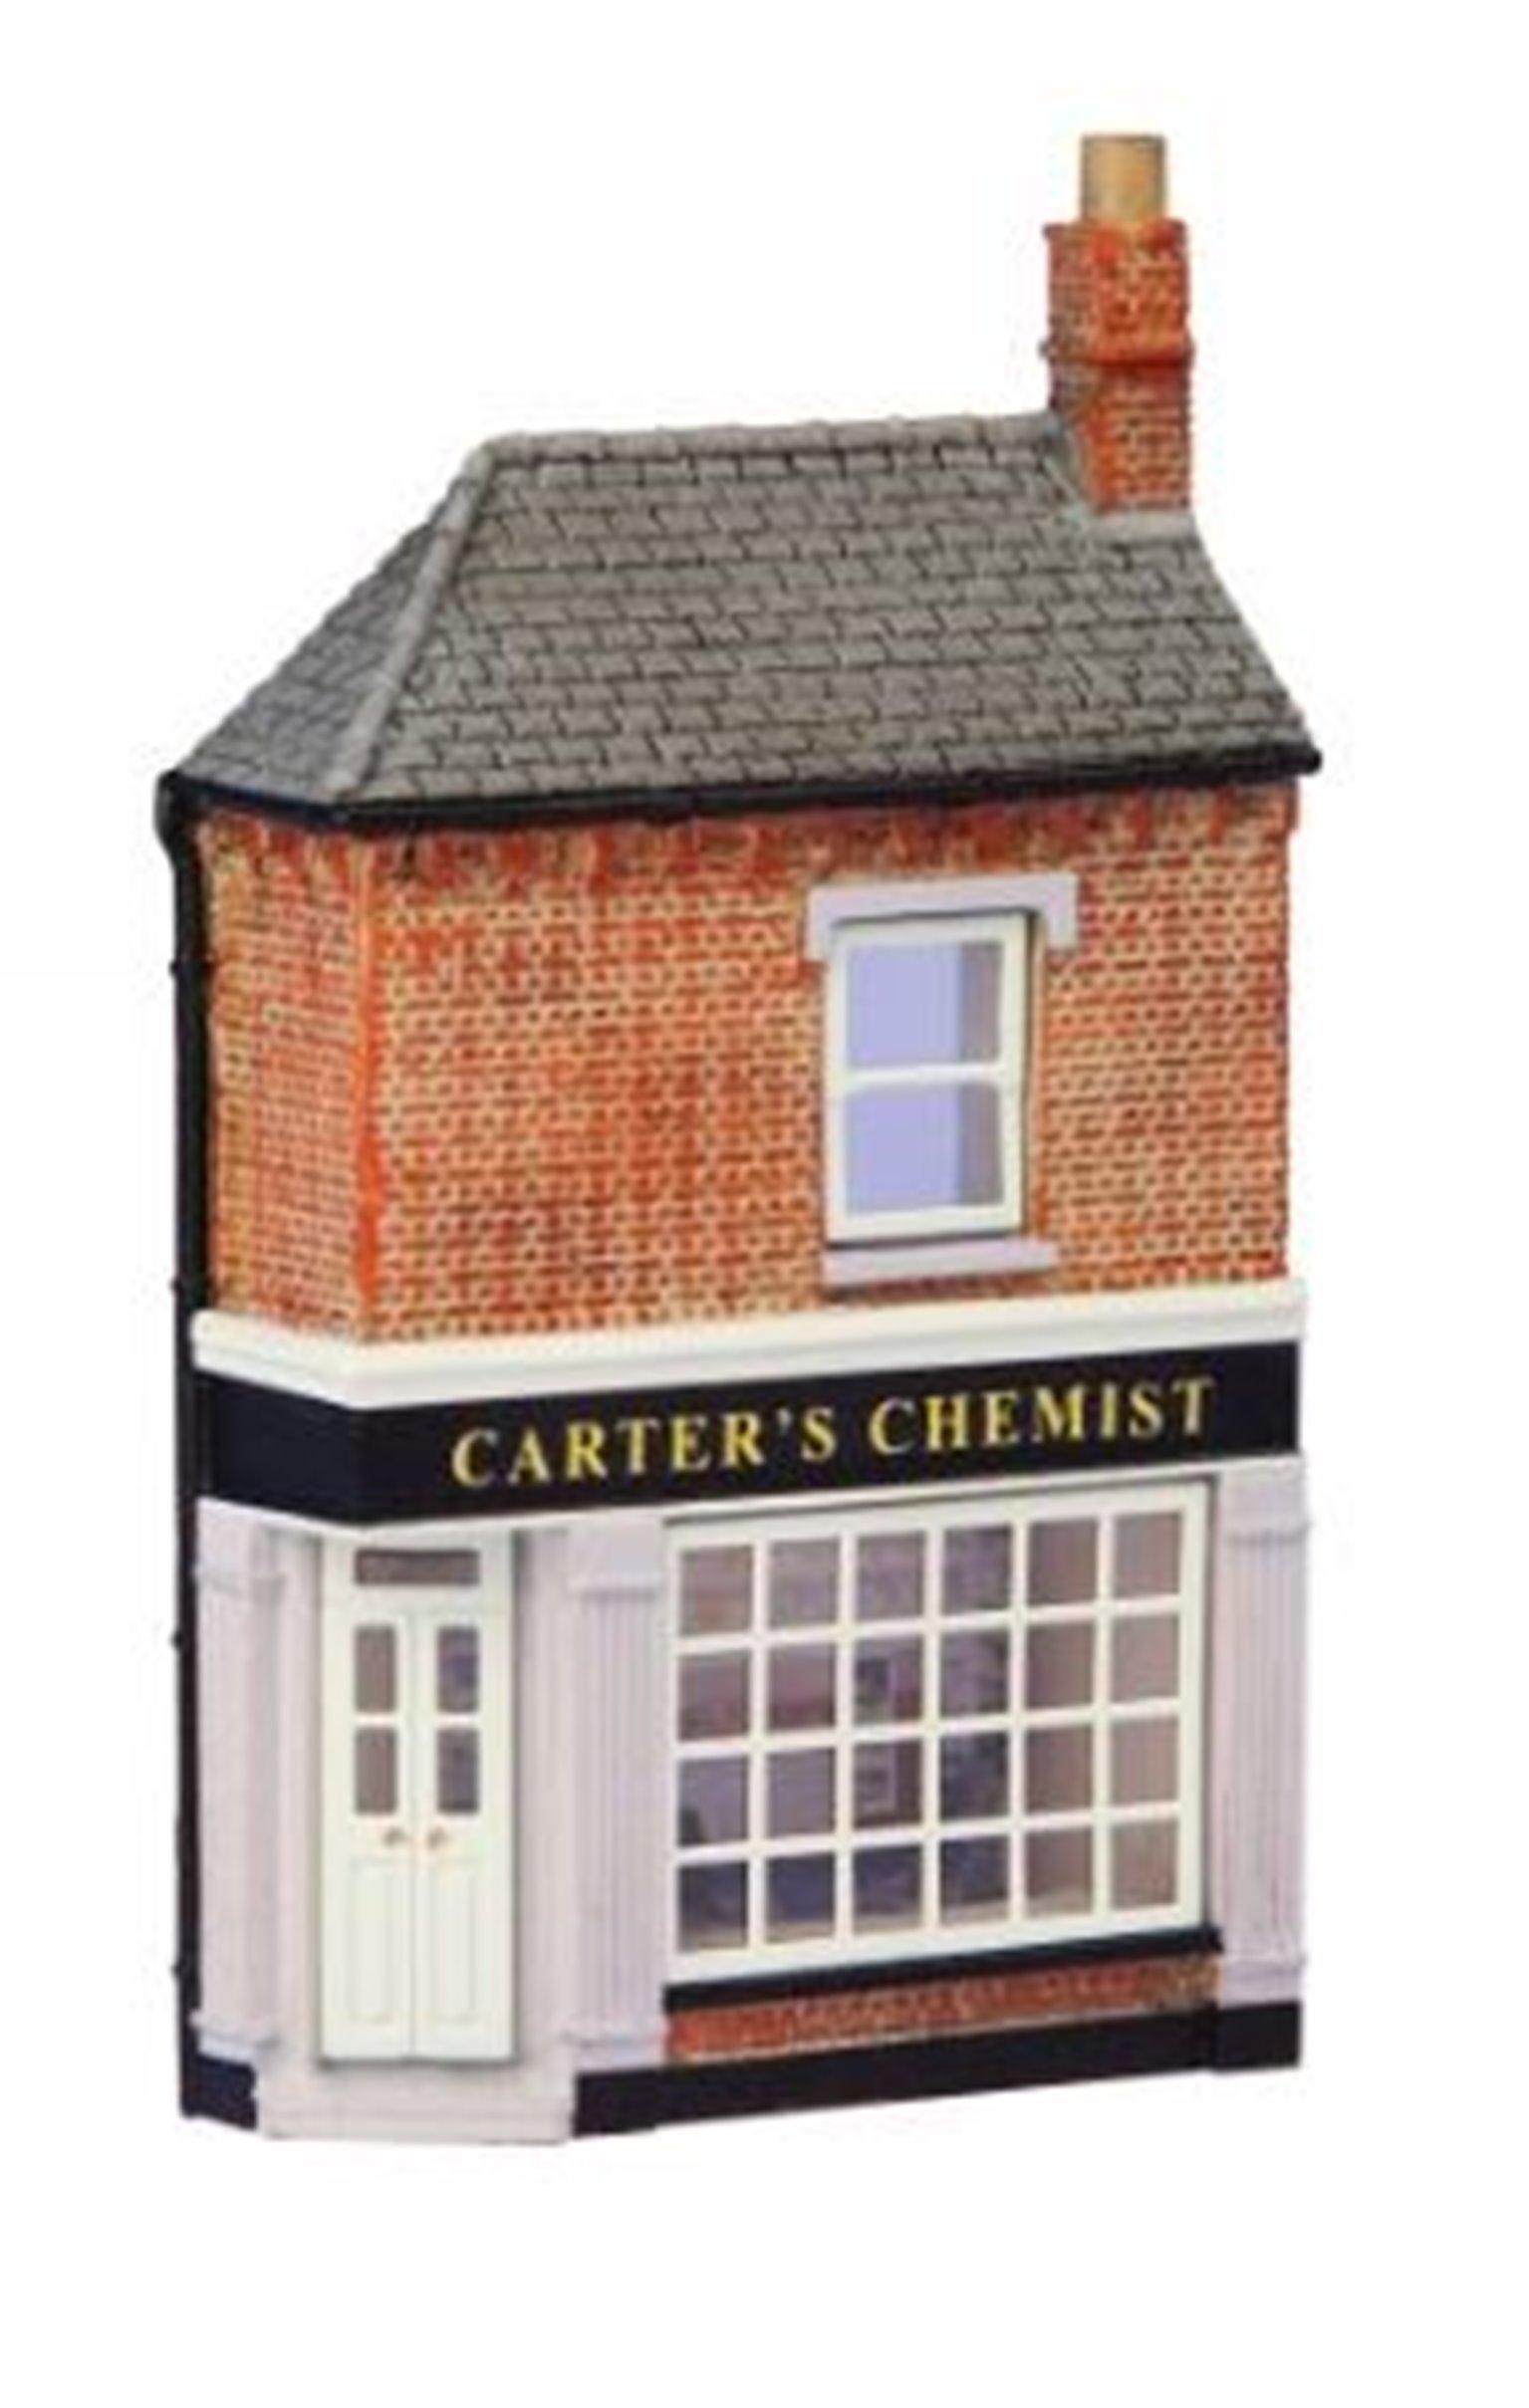 Low Relief Corner Chemists